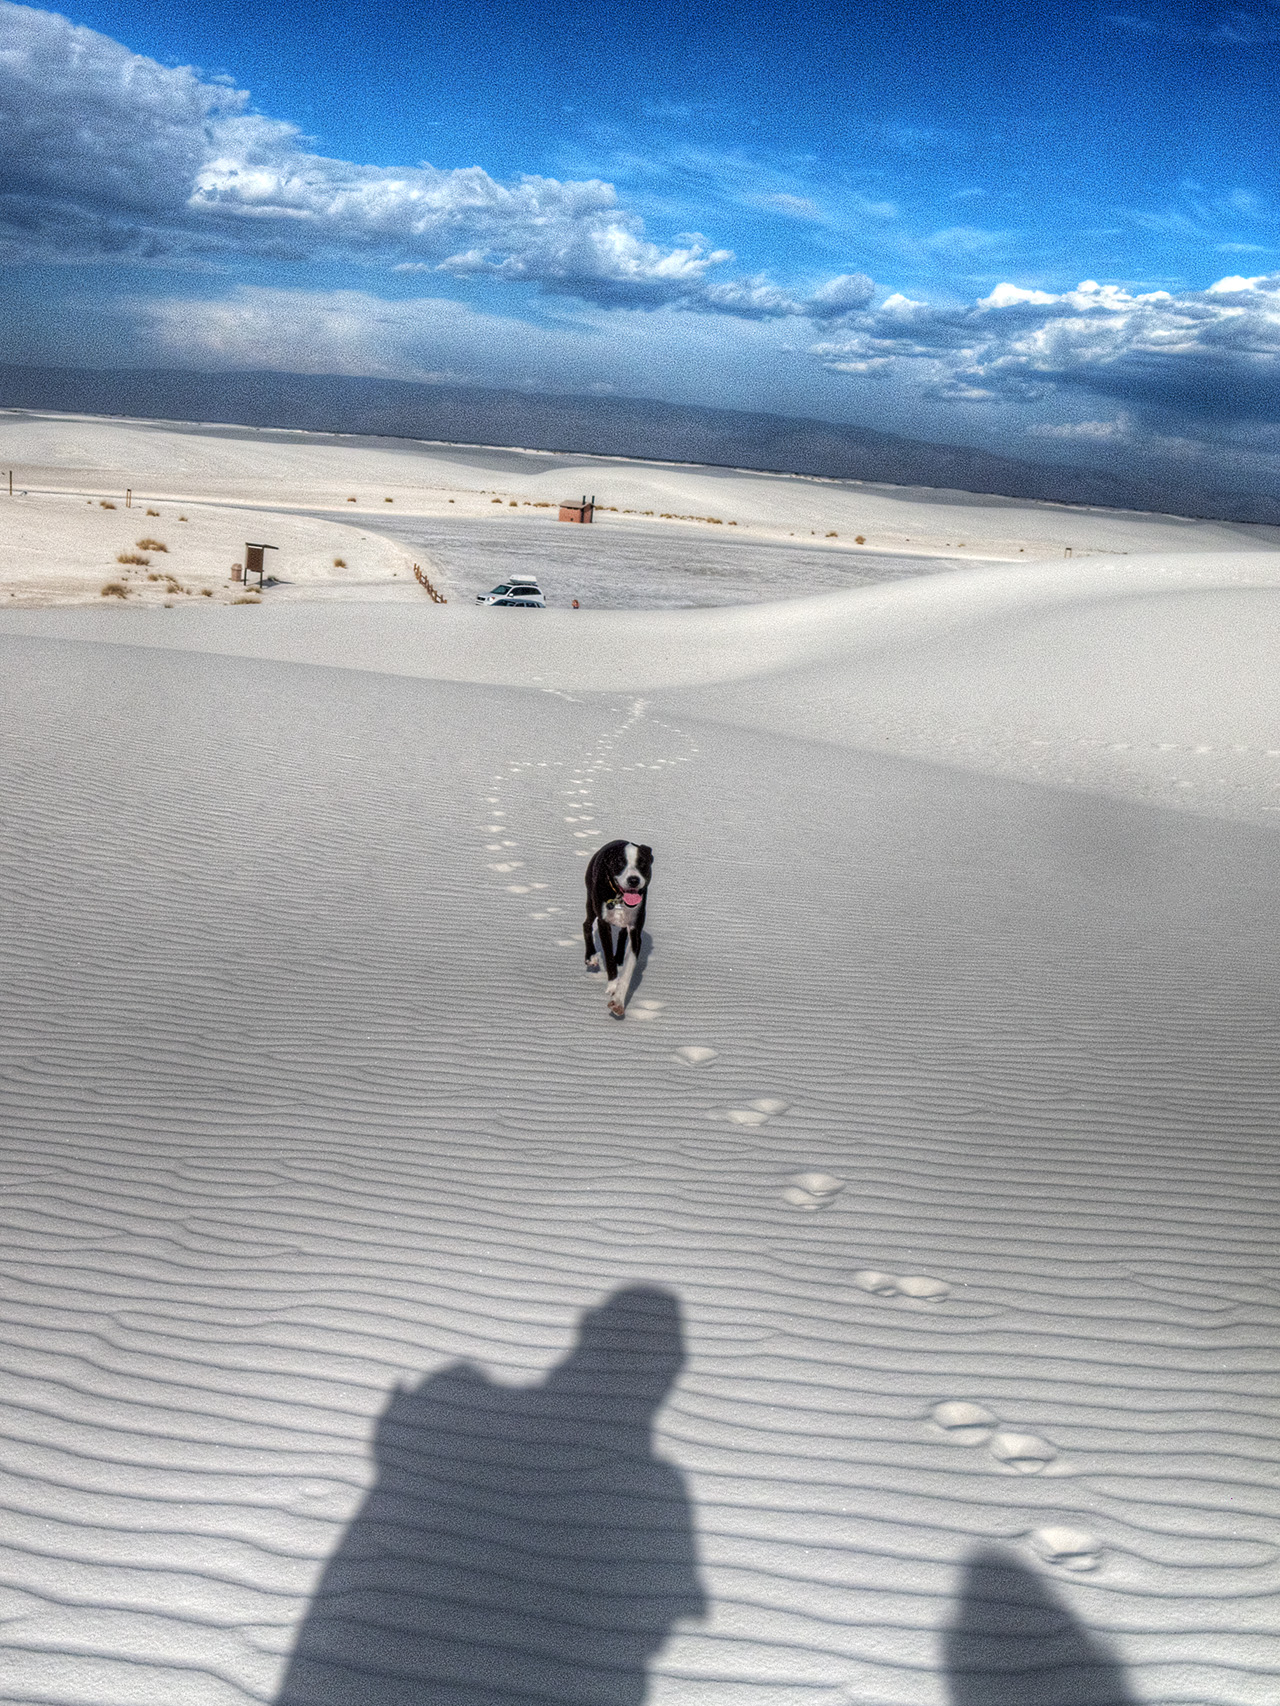 Hobee at White Sands National Monument, New Mexico.